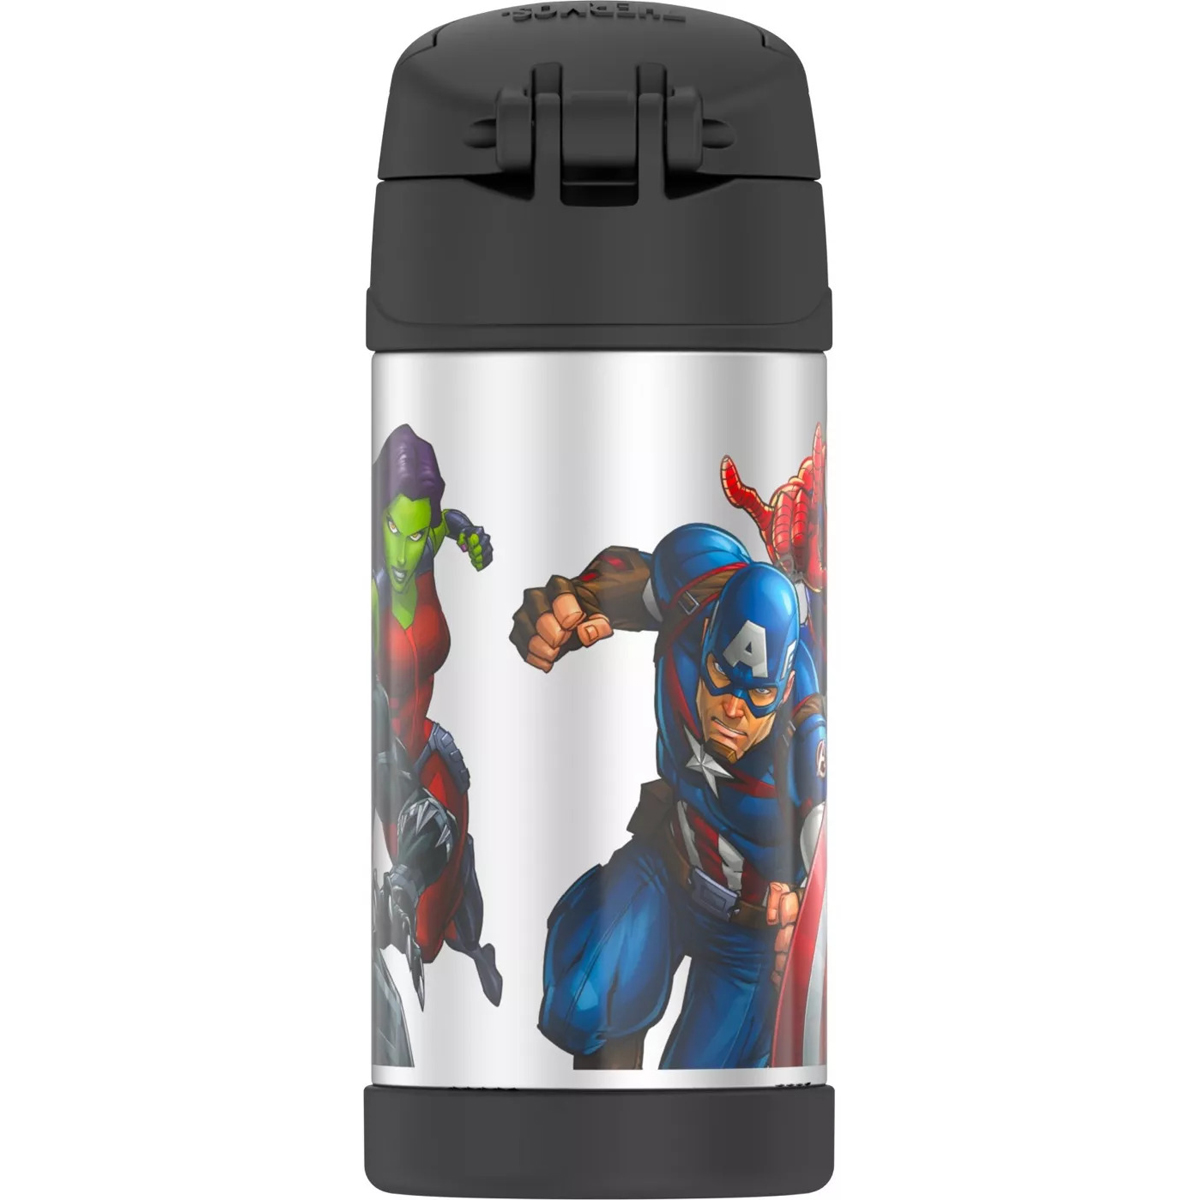 thumbnail 12 - Thermos-12-oz-Kid-039-s-Funtainer-Vacuum-Insulated-Stainless-Steel-Water-Bottle